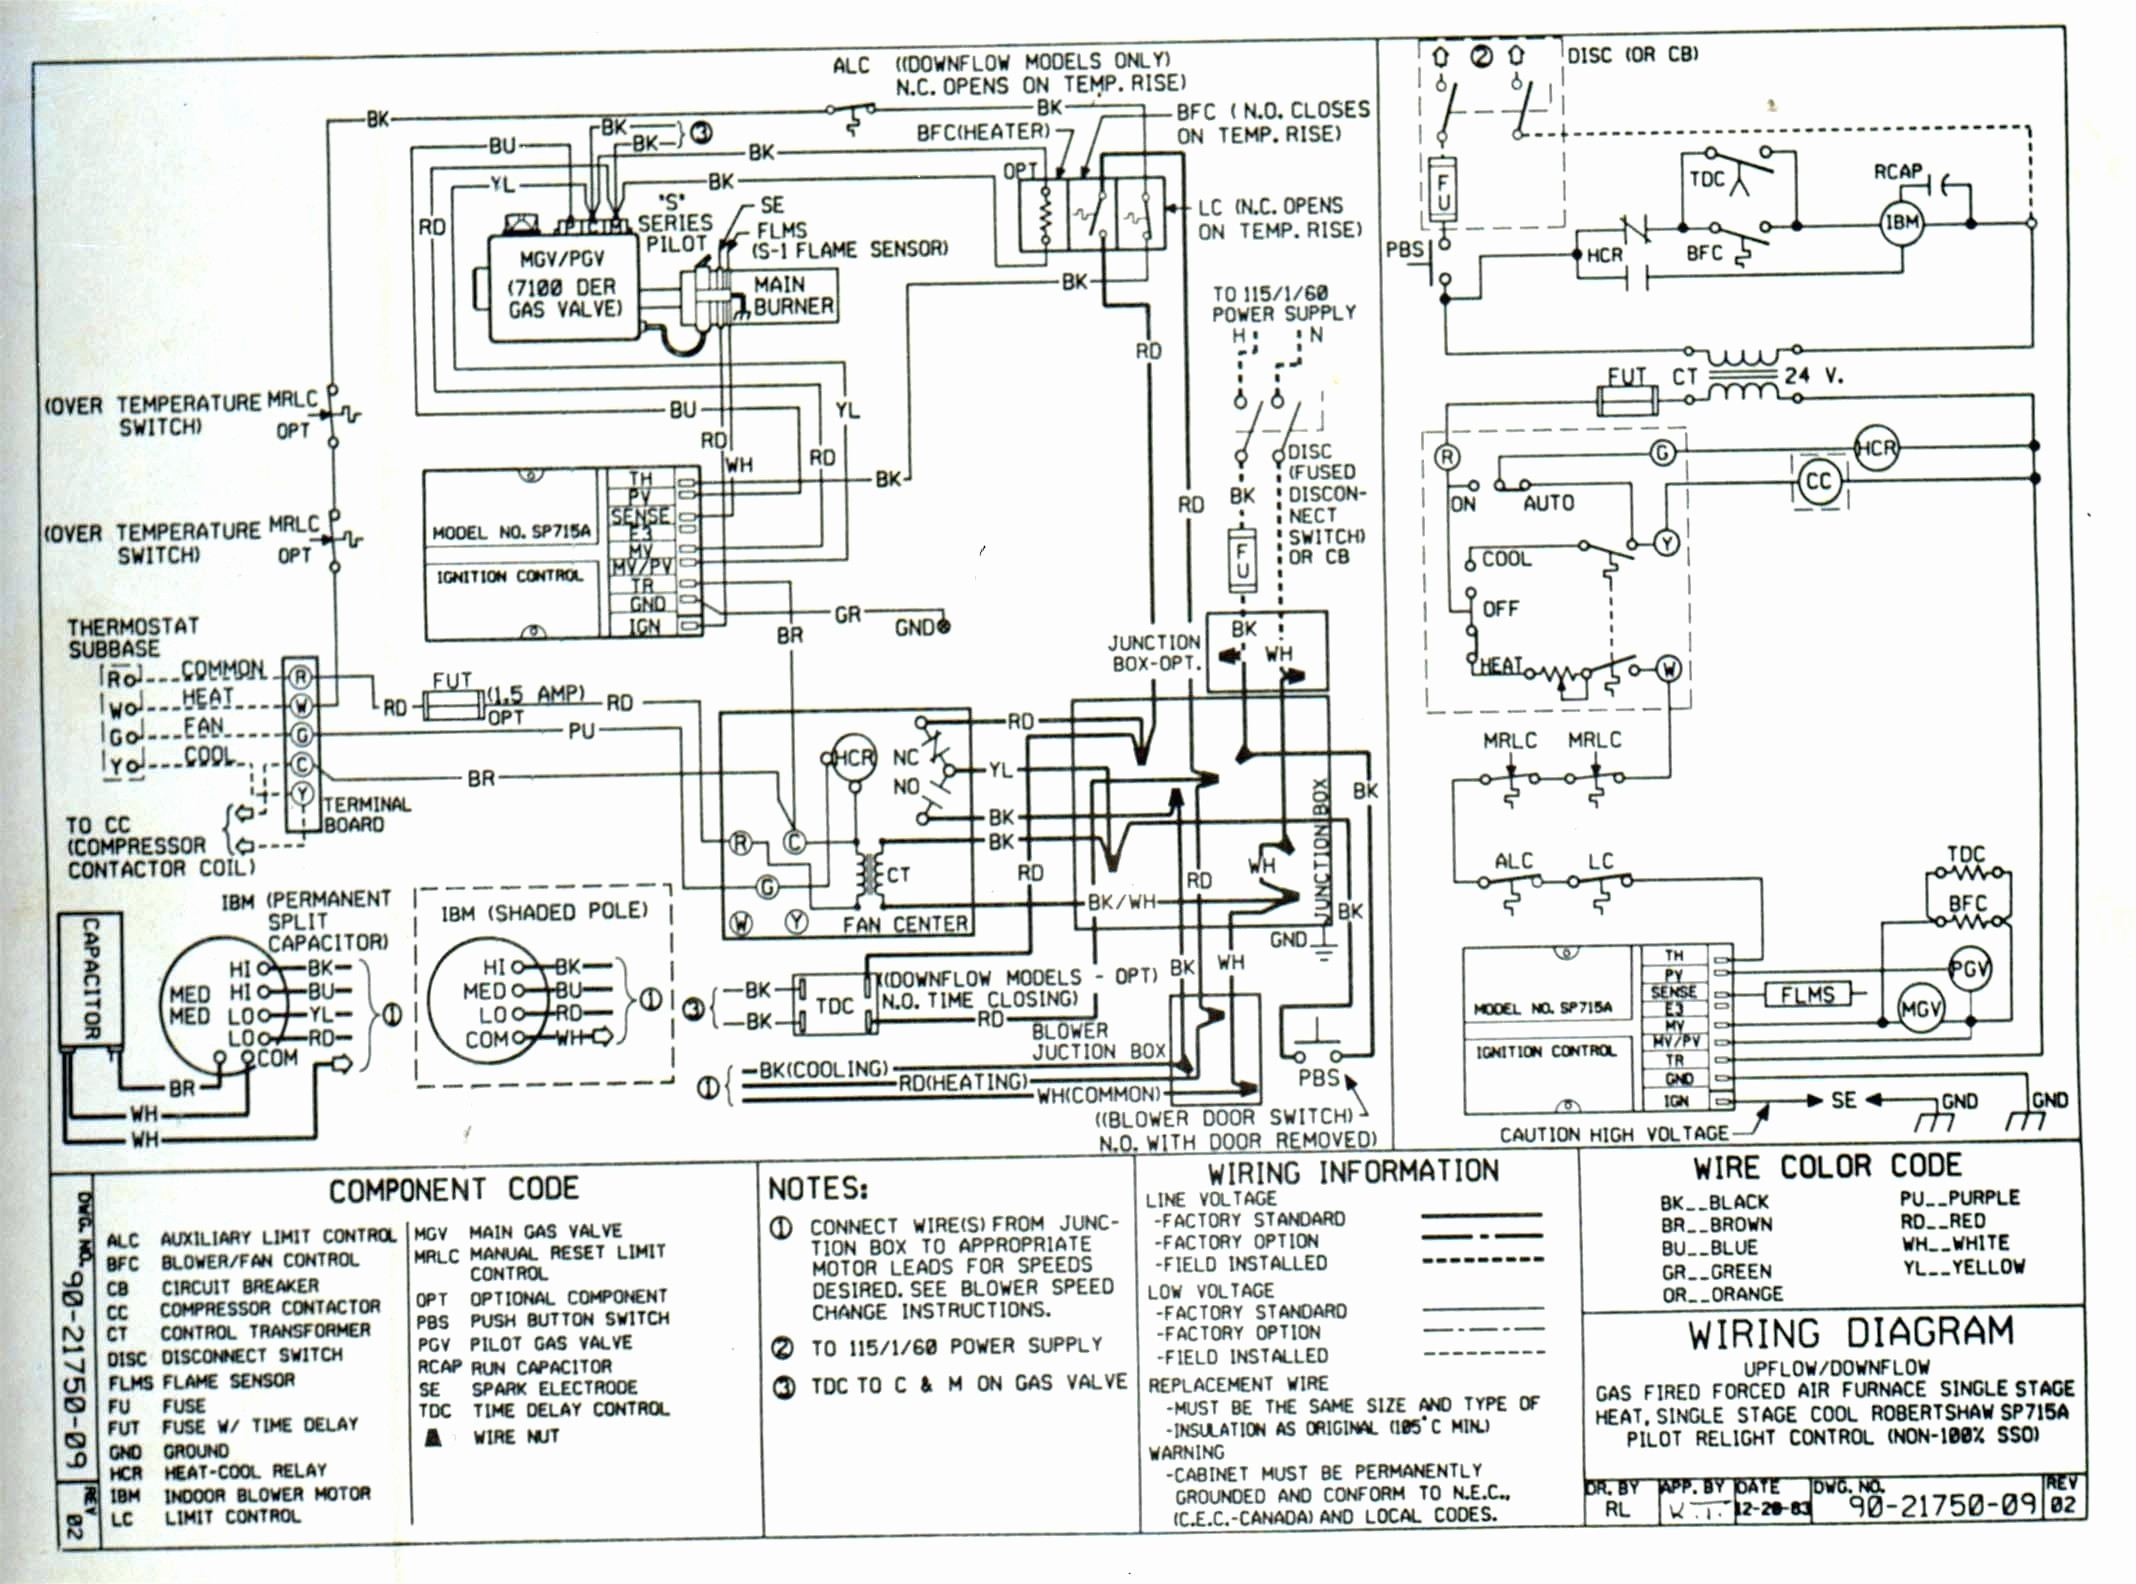 bodine b50 ballast wiring diagram Emergency Stop Circuit Diagram hight resolution of bodine electric dc motor wiring diagram free wiring diagram bodine b50 wiring diagram